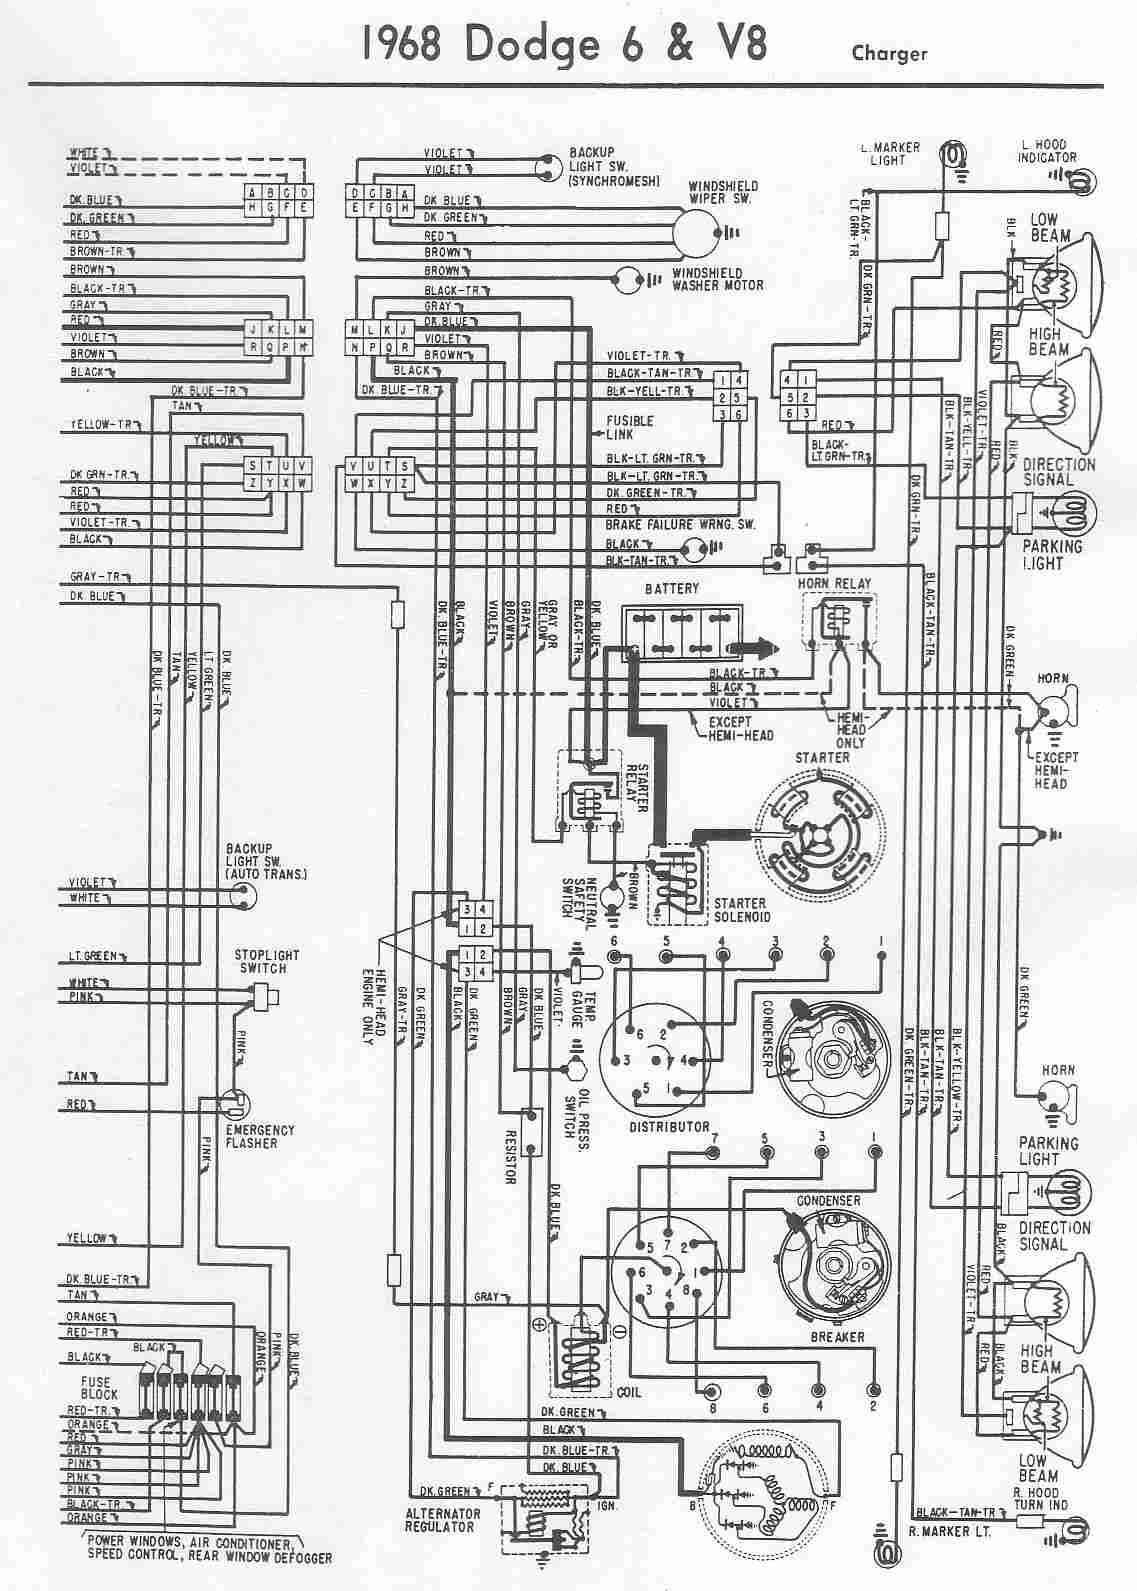 Dodge Car Manuals Wiring Diagrams Pdf Fault Codes Sprinter Van Upfitters Download